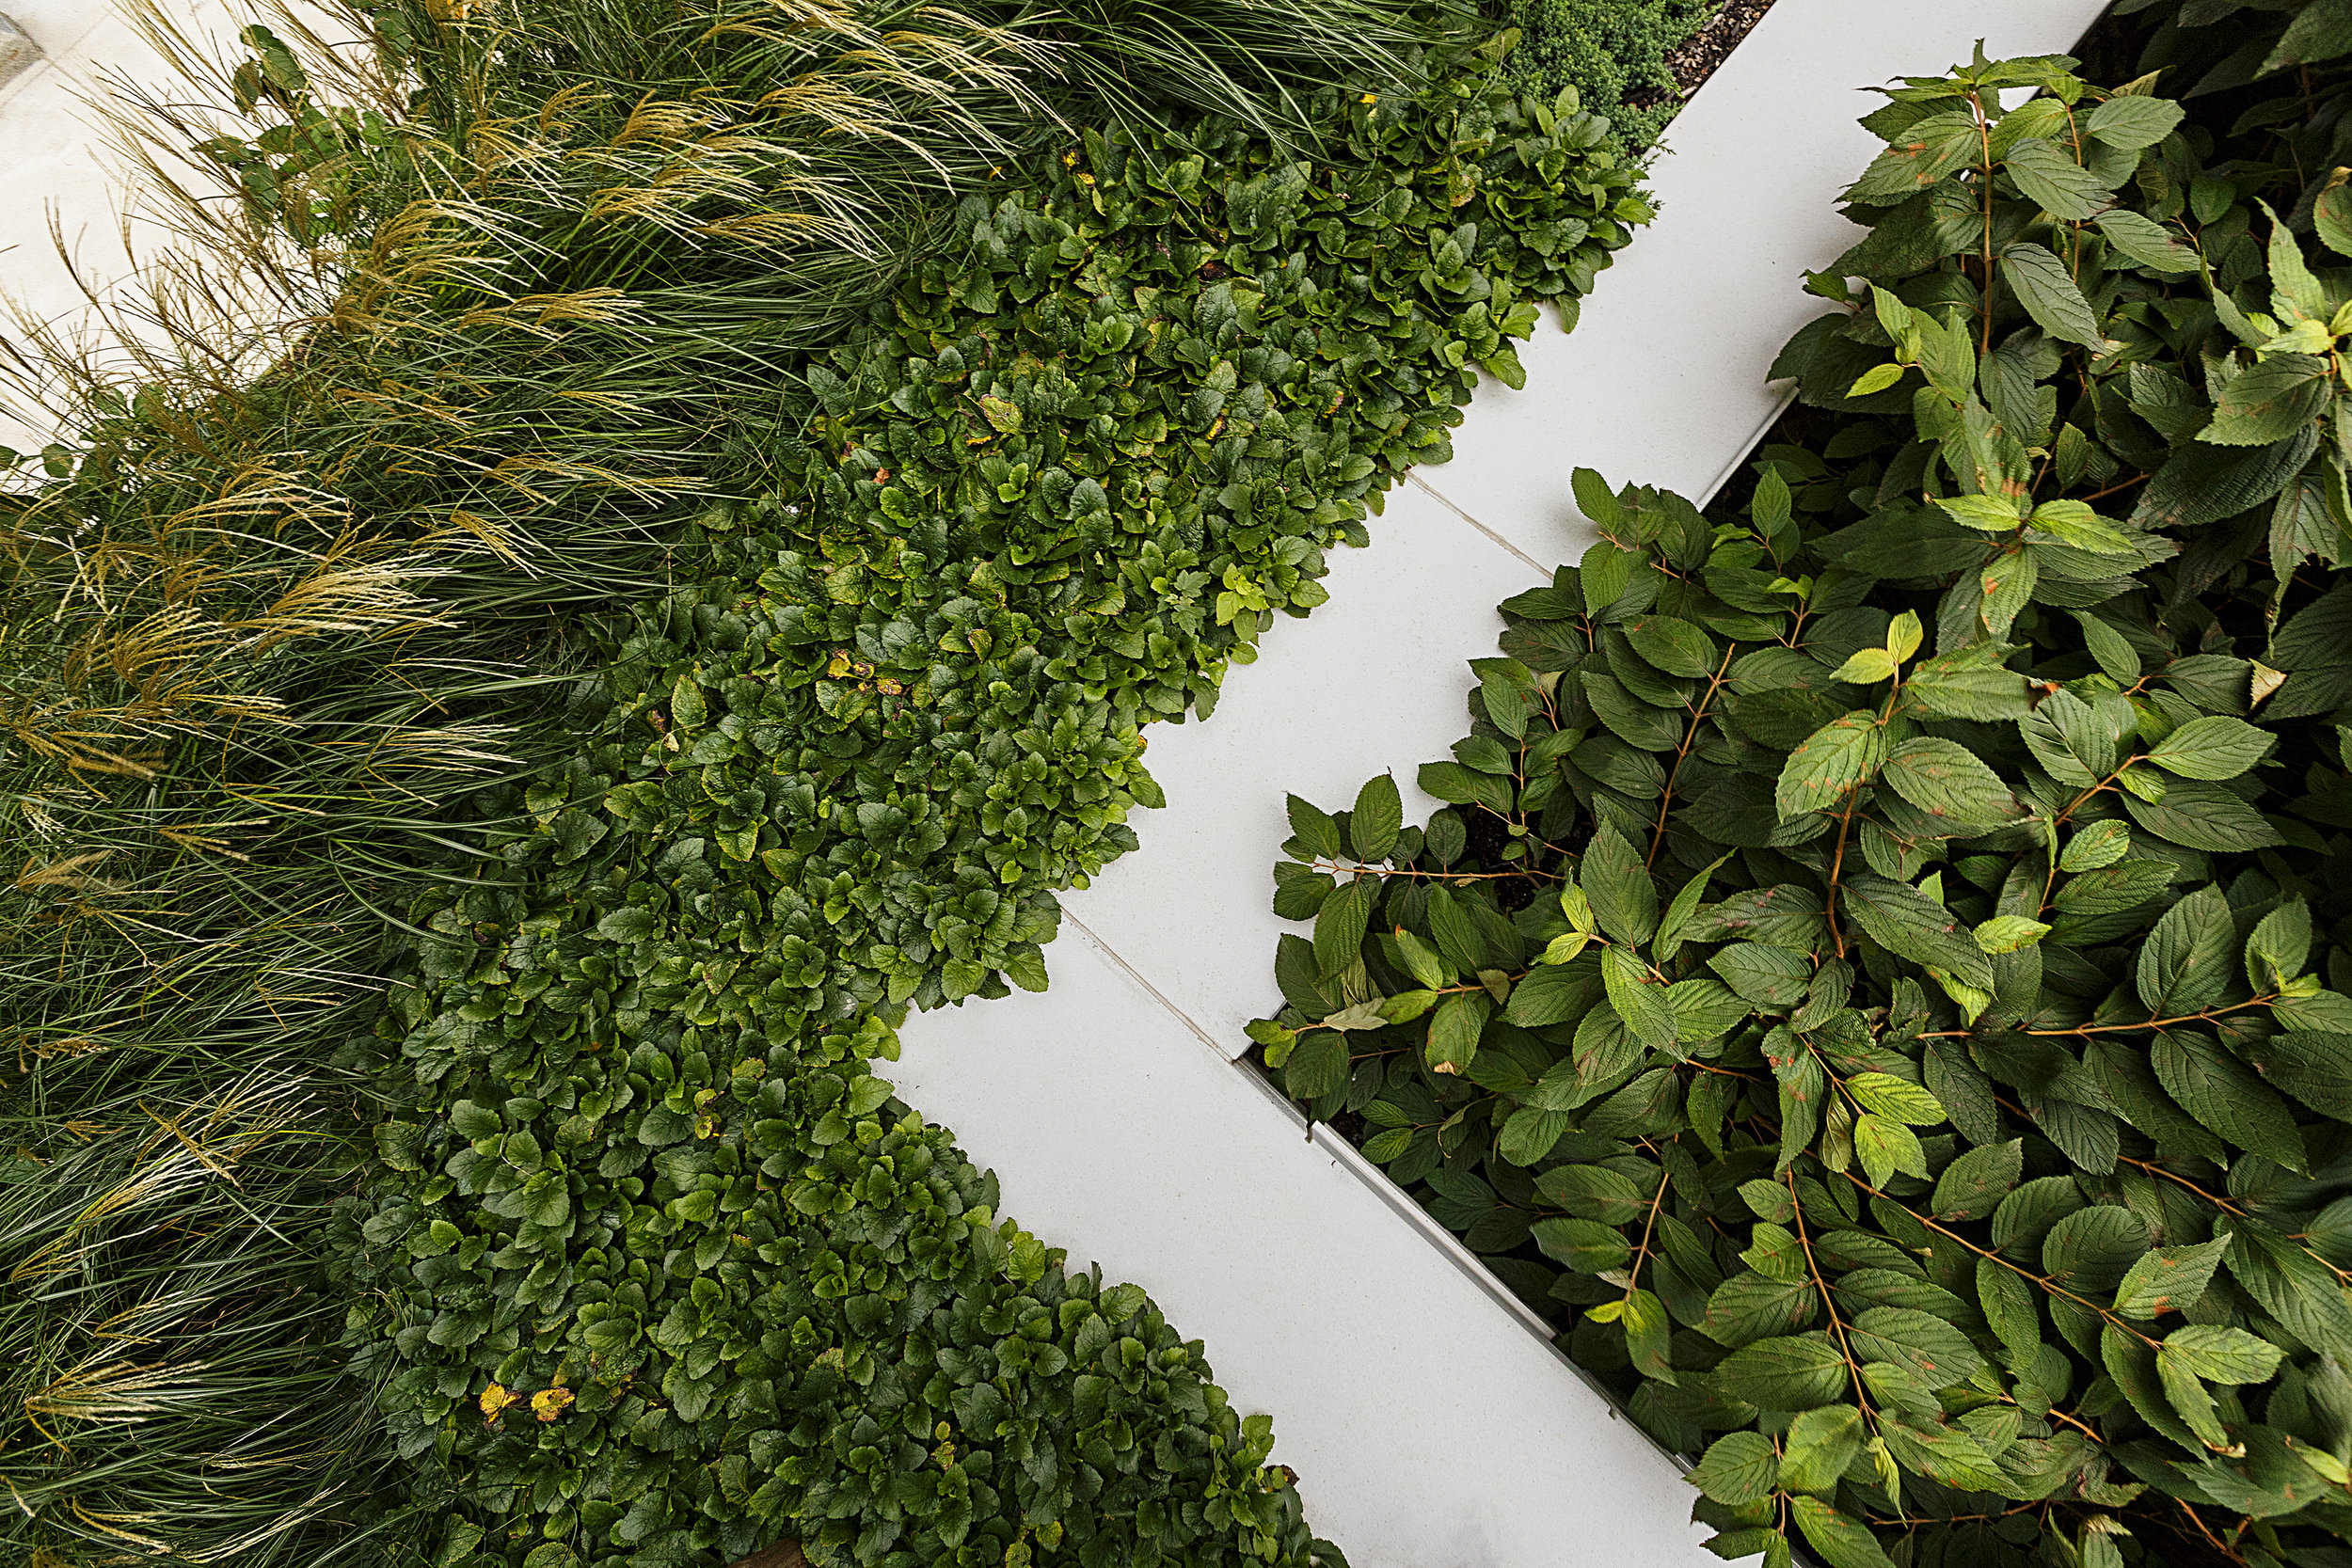 recover-green-roofs-patrick-rogers-photography-montaje-courtyard-skydeck-11-2018-2.jpg